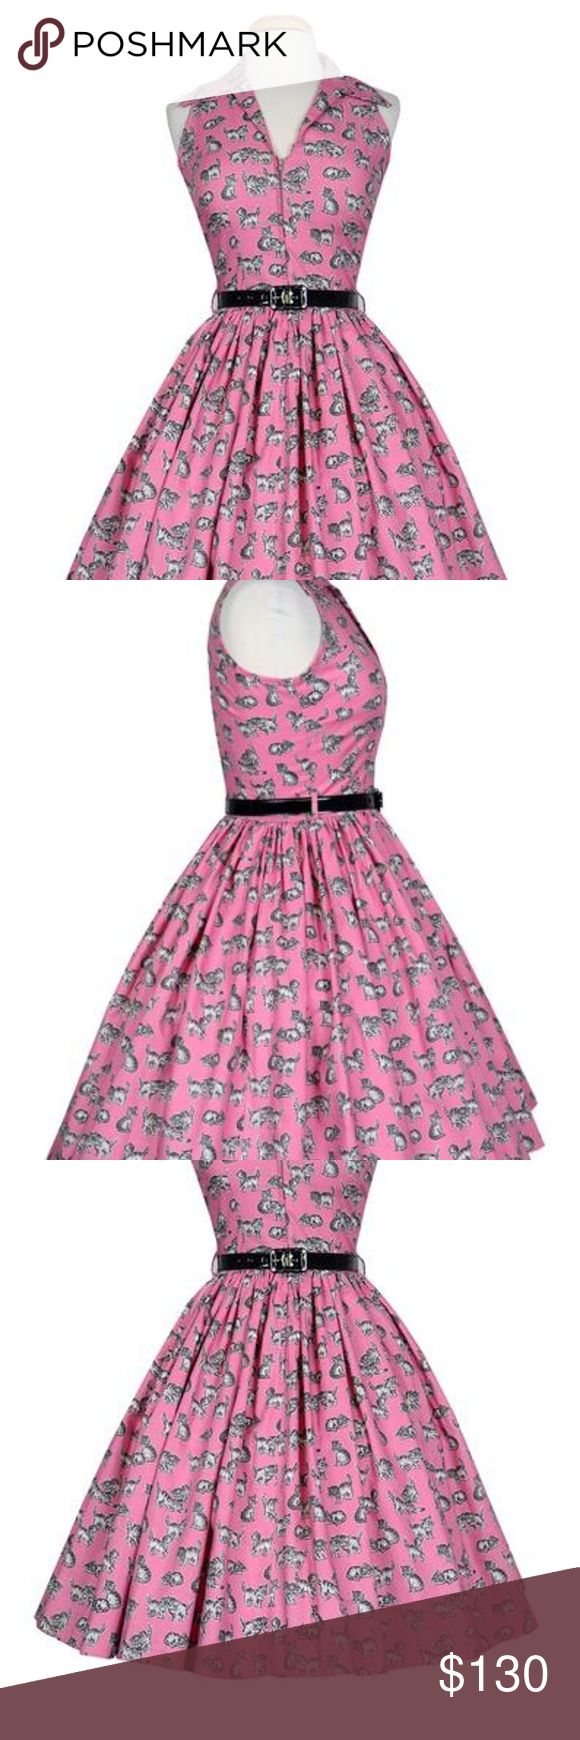 Bernie Dexter Mari Dress in Pink Kitten Print Bernie Dexter pin up Mari Dress in Pink Kitten Print.   Classic 1950s style dress in 100% cotton, collar, hidden pockets and zipper in front. Cute novelty print of mans best friends . I can just see starlets in the 195os wearing this to dip their hands & feet in cement!     100% cotton long zipper in front belt includes hidden lipstick pockets made in the USA DRY CLEAN or Cold Wash hang dry Bernie Dexter Dresses Midi